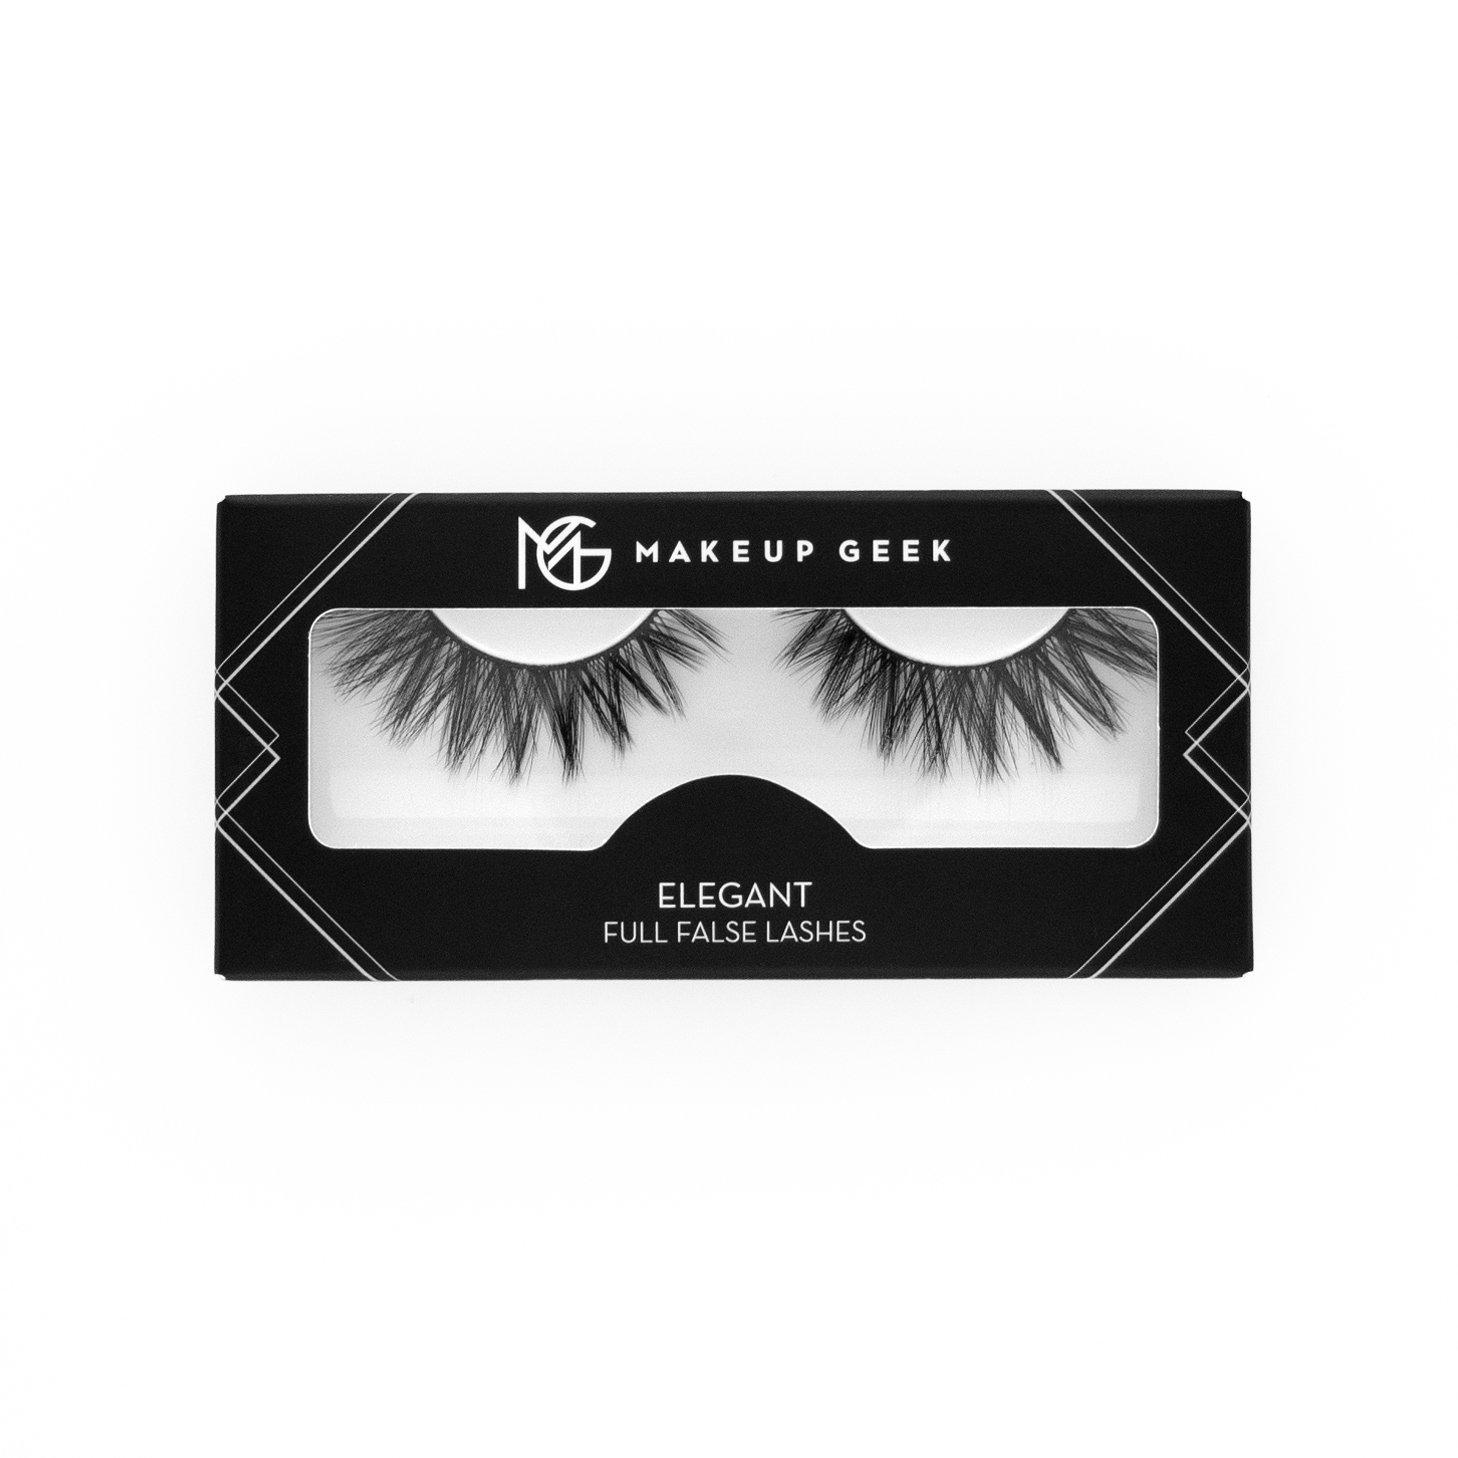 Makeup Geek Full False Lashes Elegant